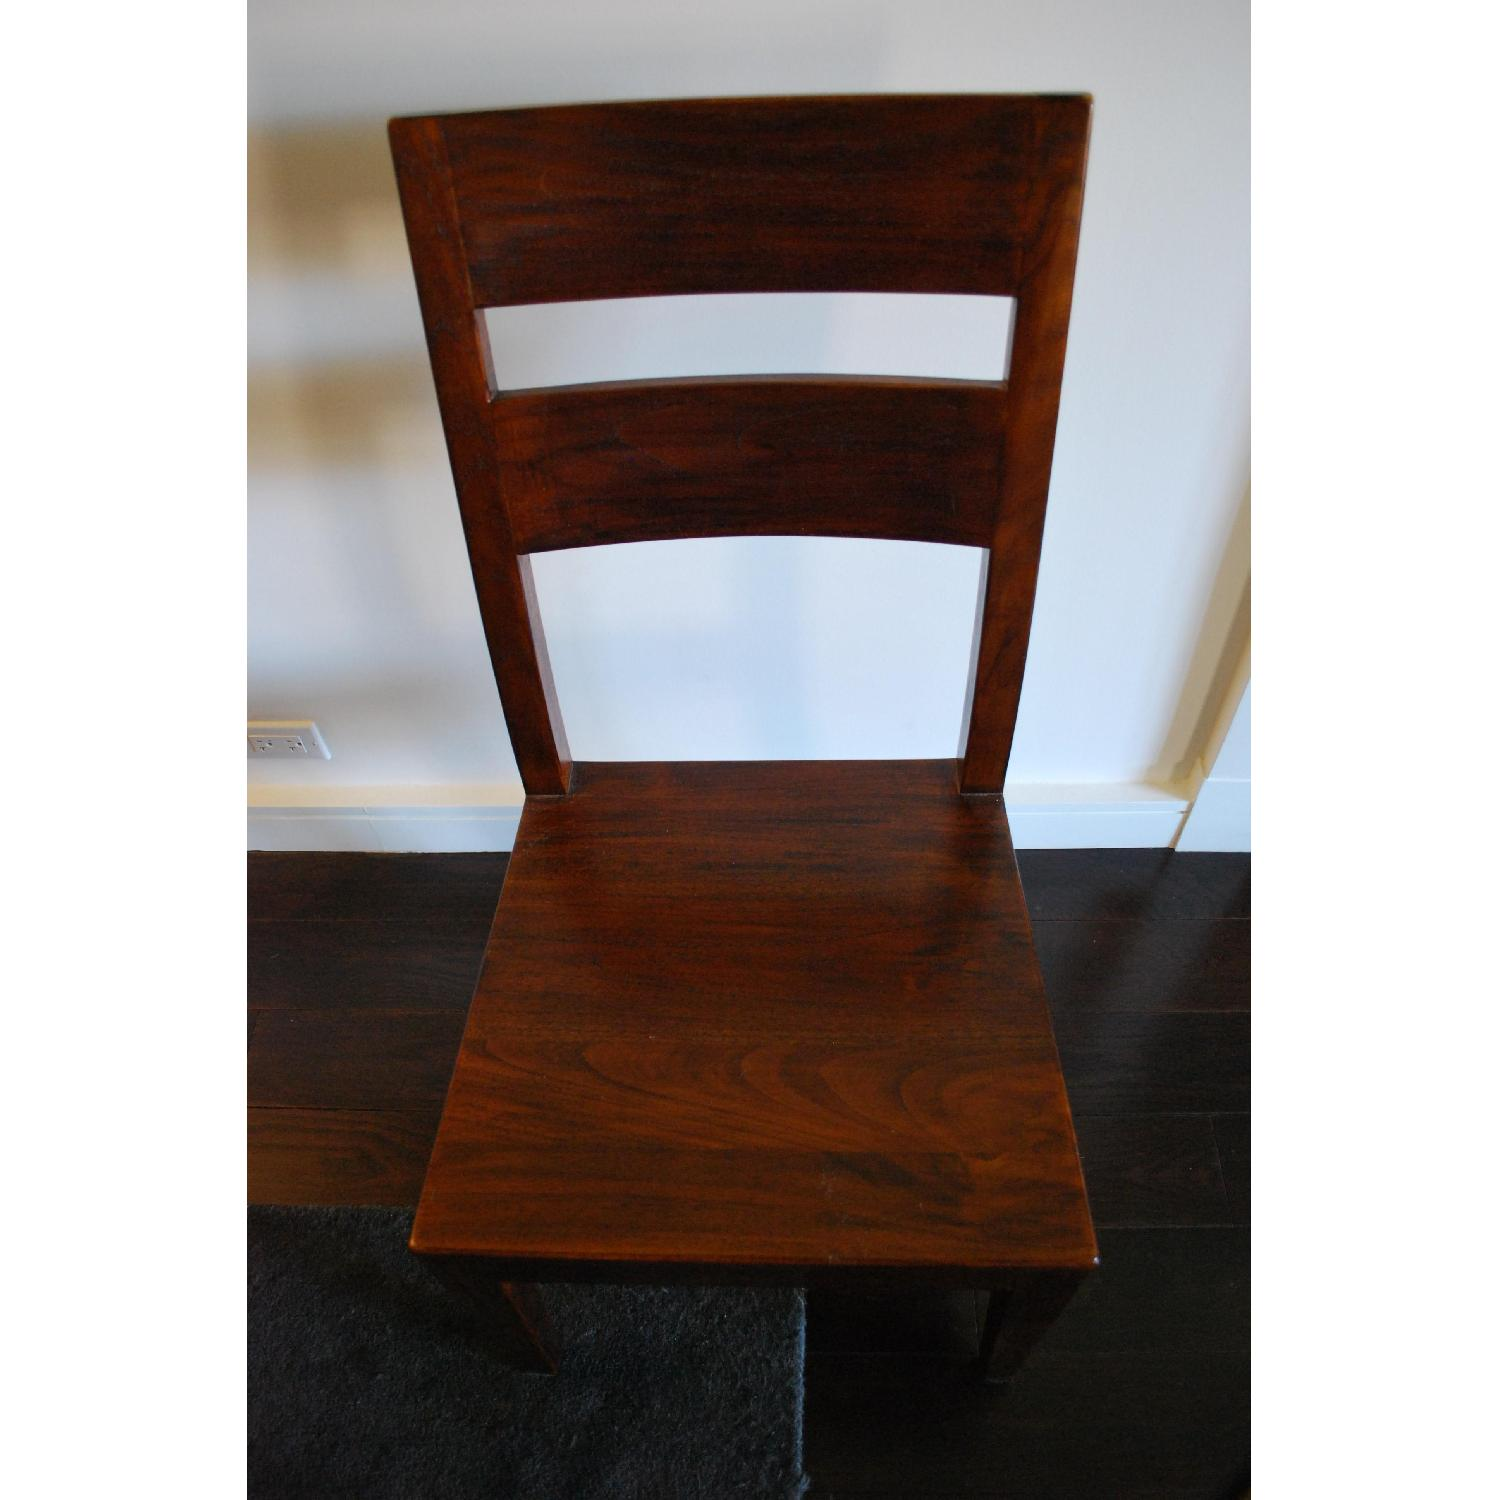 Crate & Barrel Basque Wood Dining Chairs - image-3